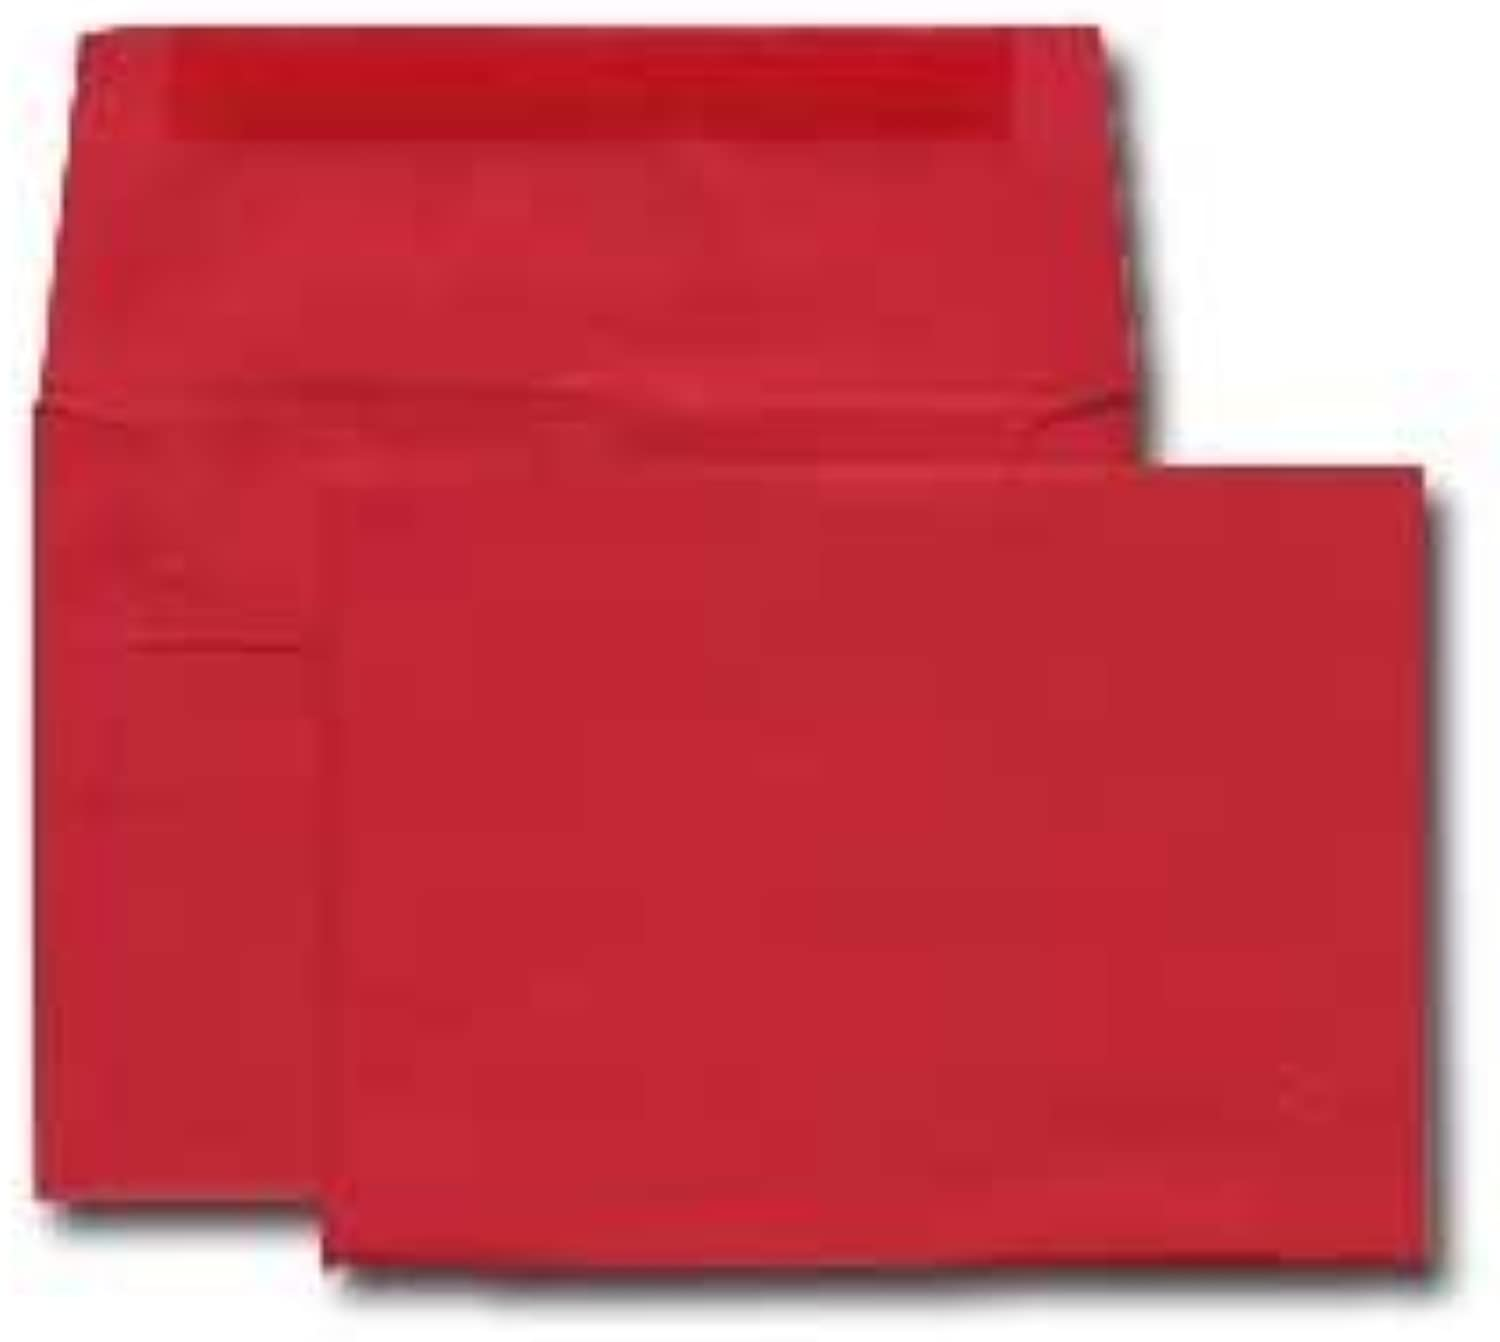 A7 Invitation Envelope Envelope Envelope - Astrobright - 24  ReEntry rot (5 1 4 x 7 1 4) - Announcement Envelope Series (Pkg of 100) by Office Express B0141M32Y8 | Qualitativ Hochwertiges Produkt